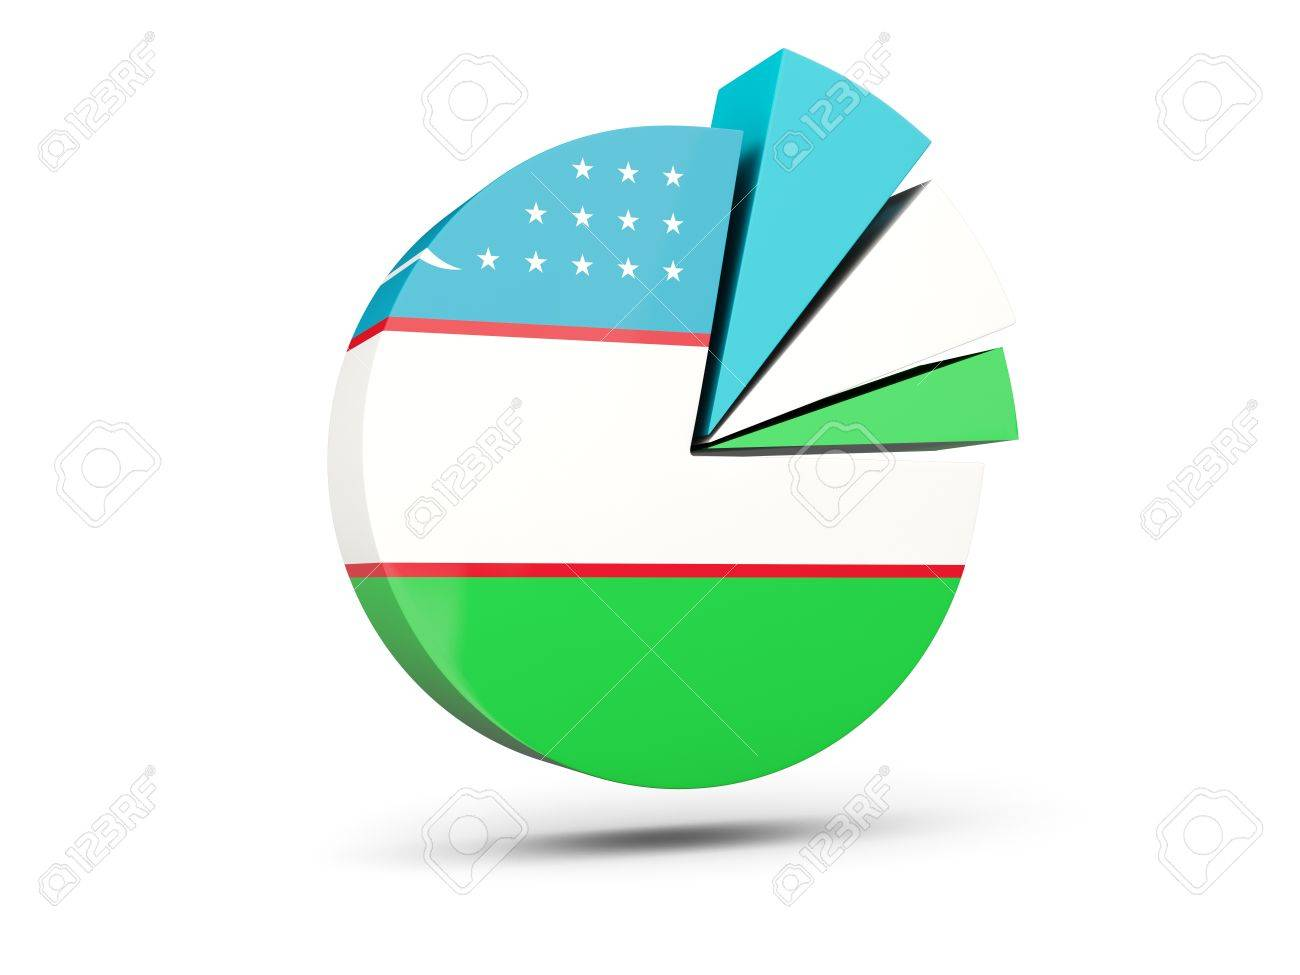 hight resolution of flag of uzbekistan round diagram icon isolated on white 3d illustration stock illustration